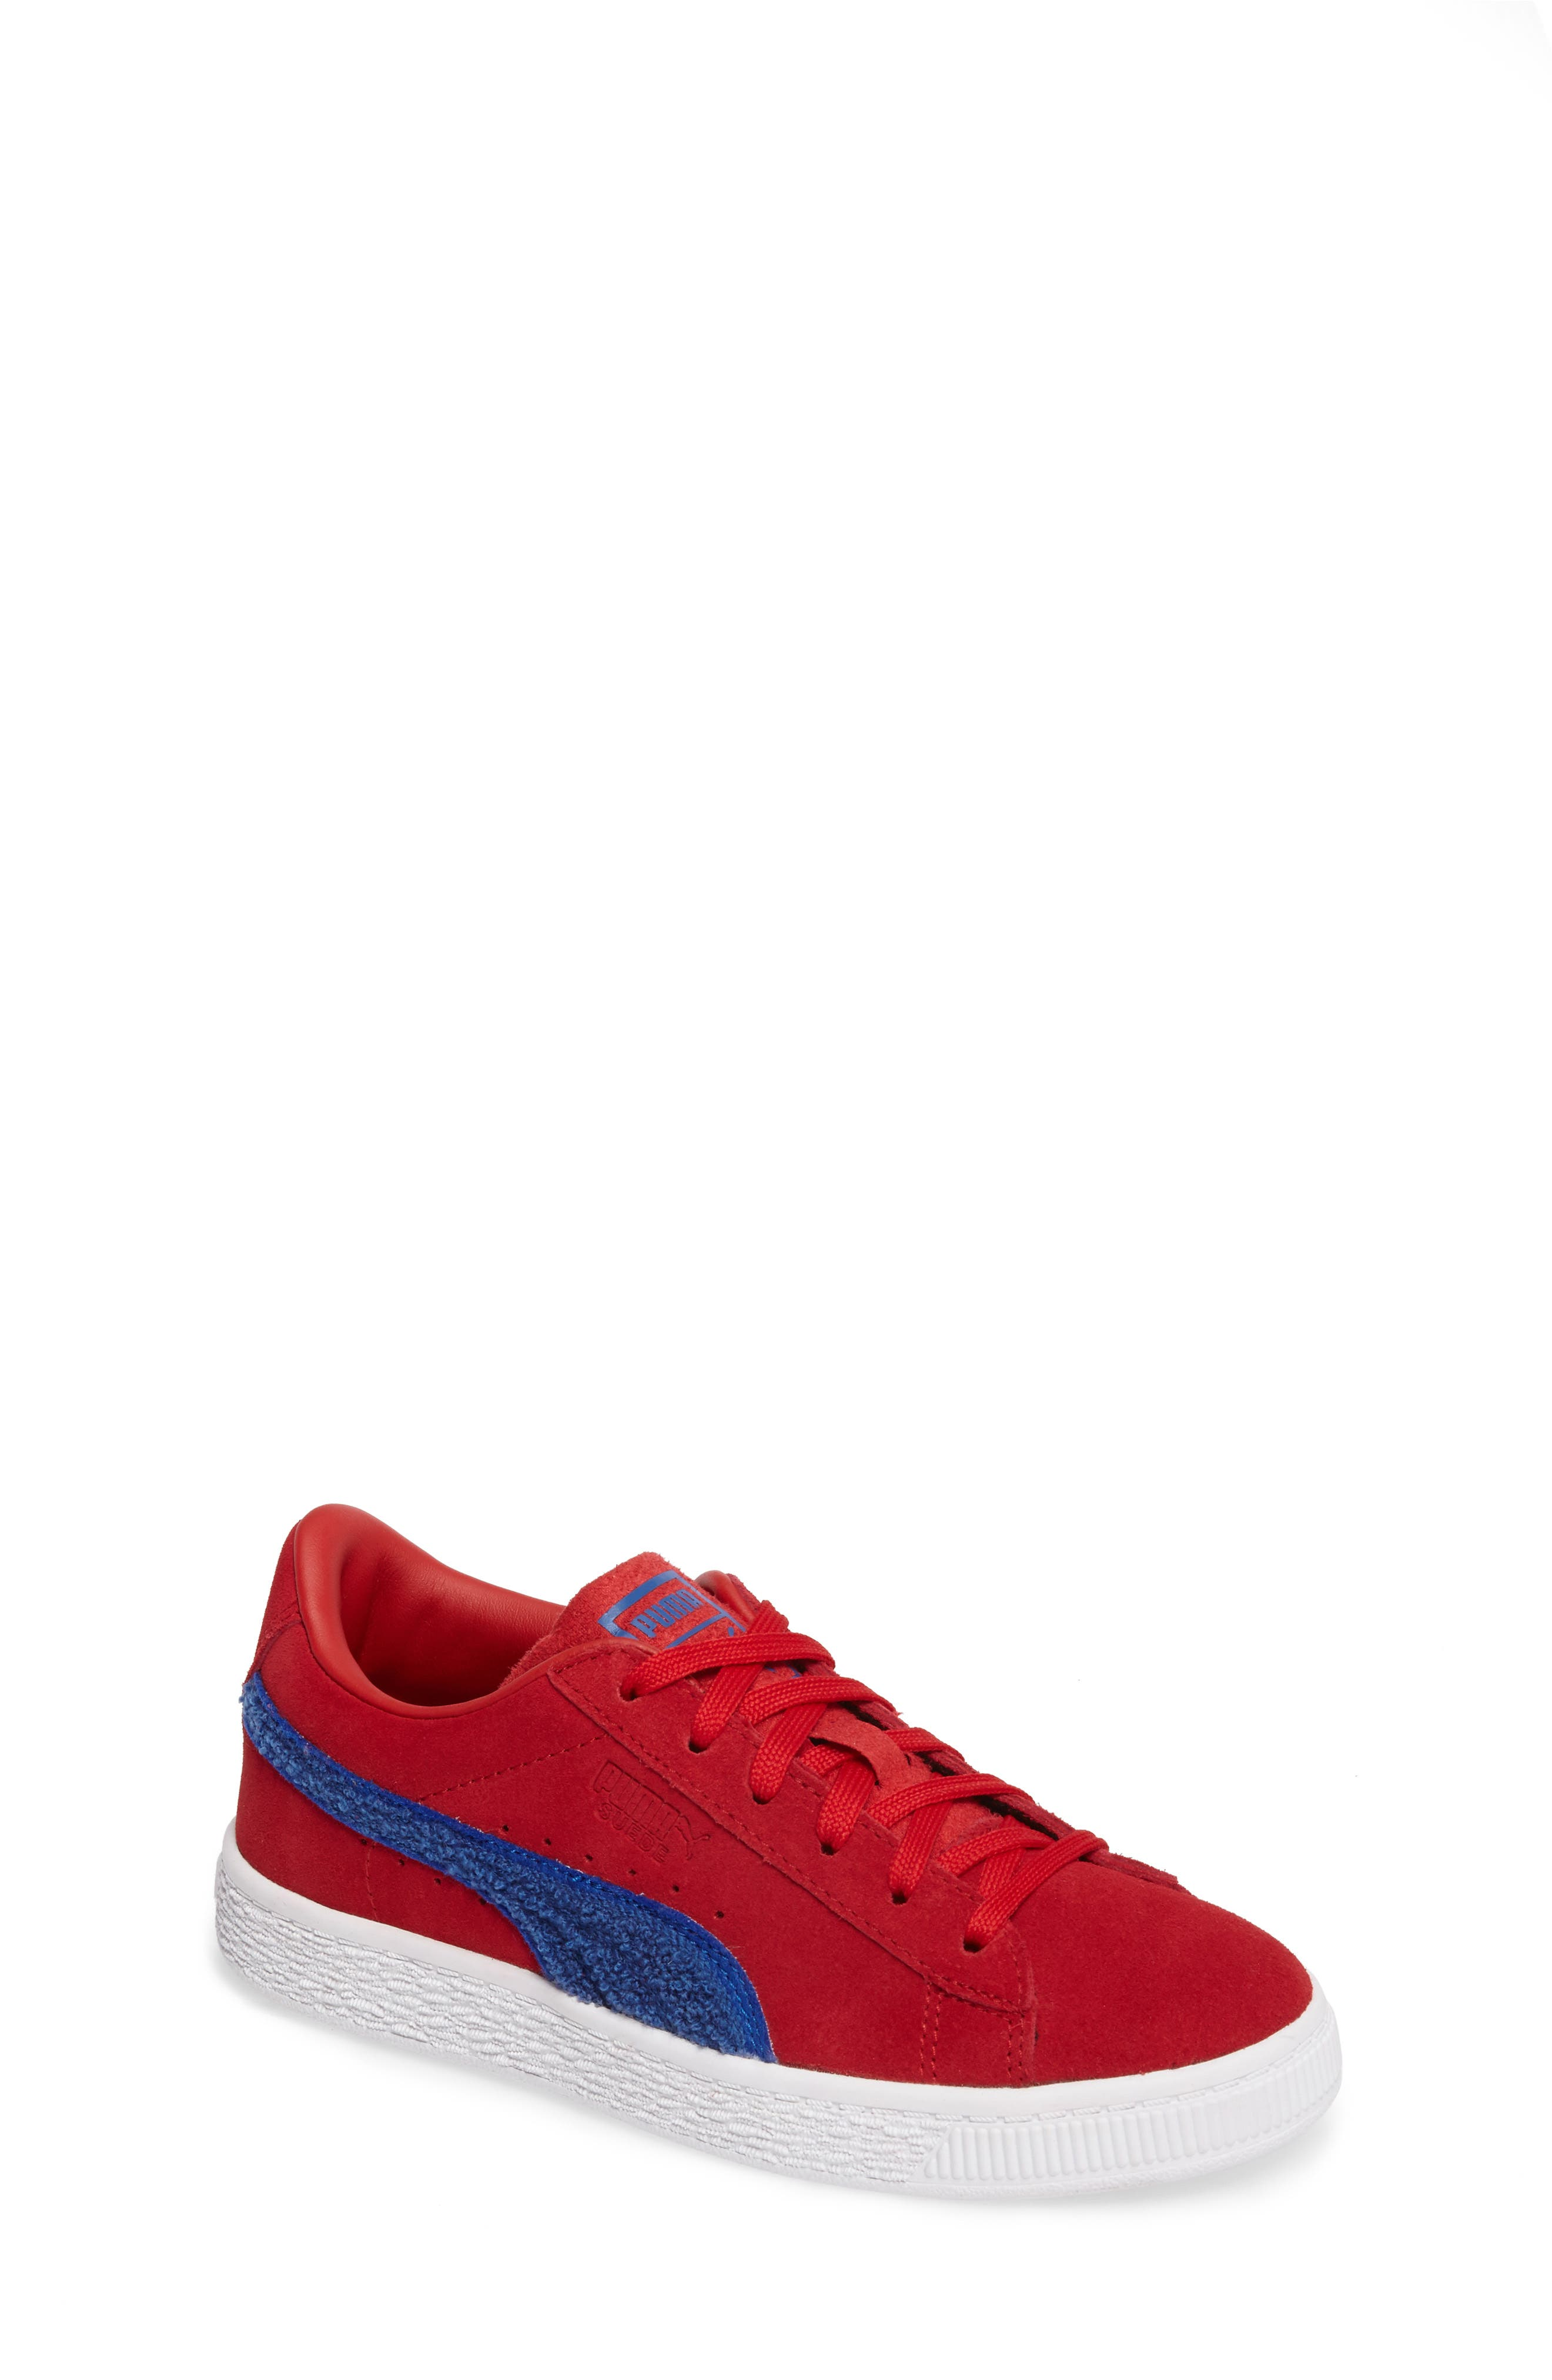 Classic Terry Sneaker,                             Main thumbnail 1, color,                             600